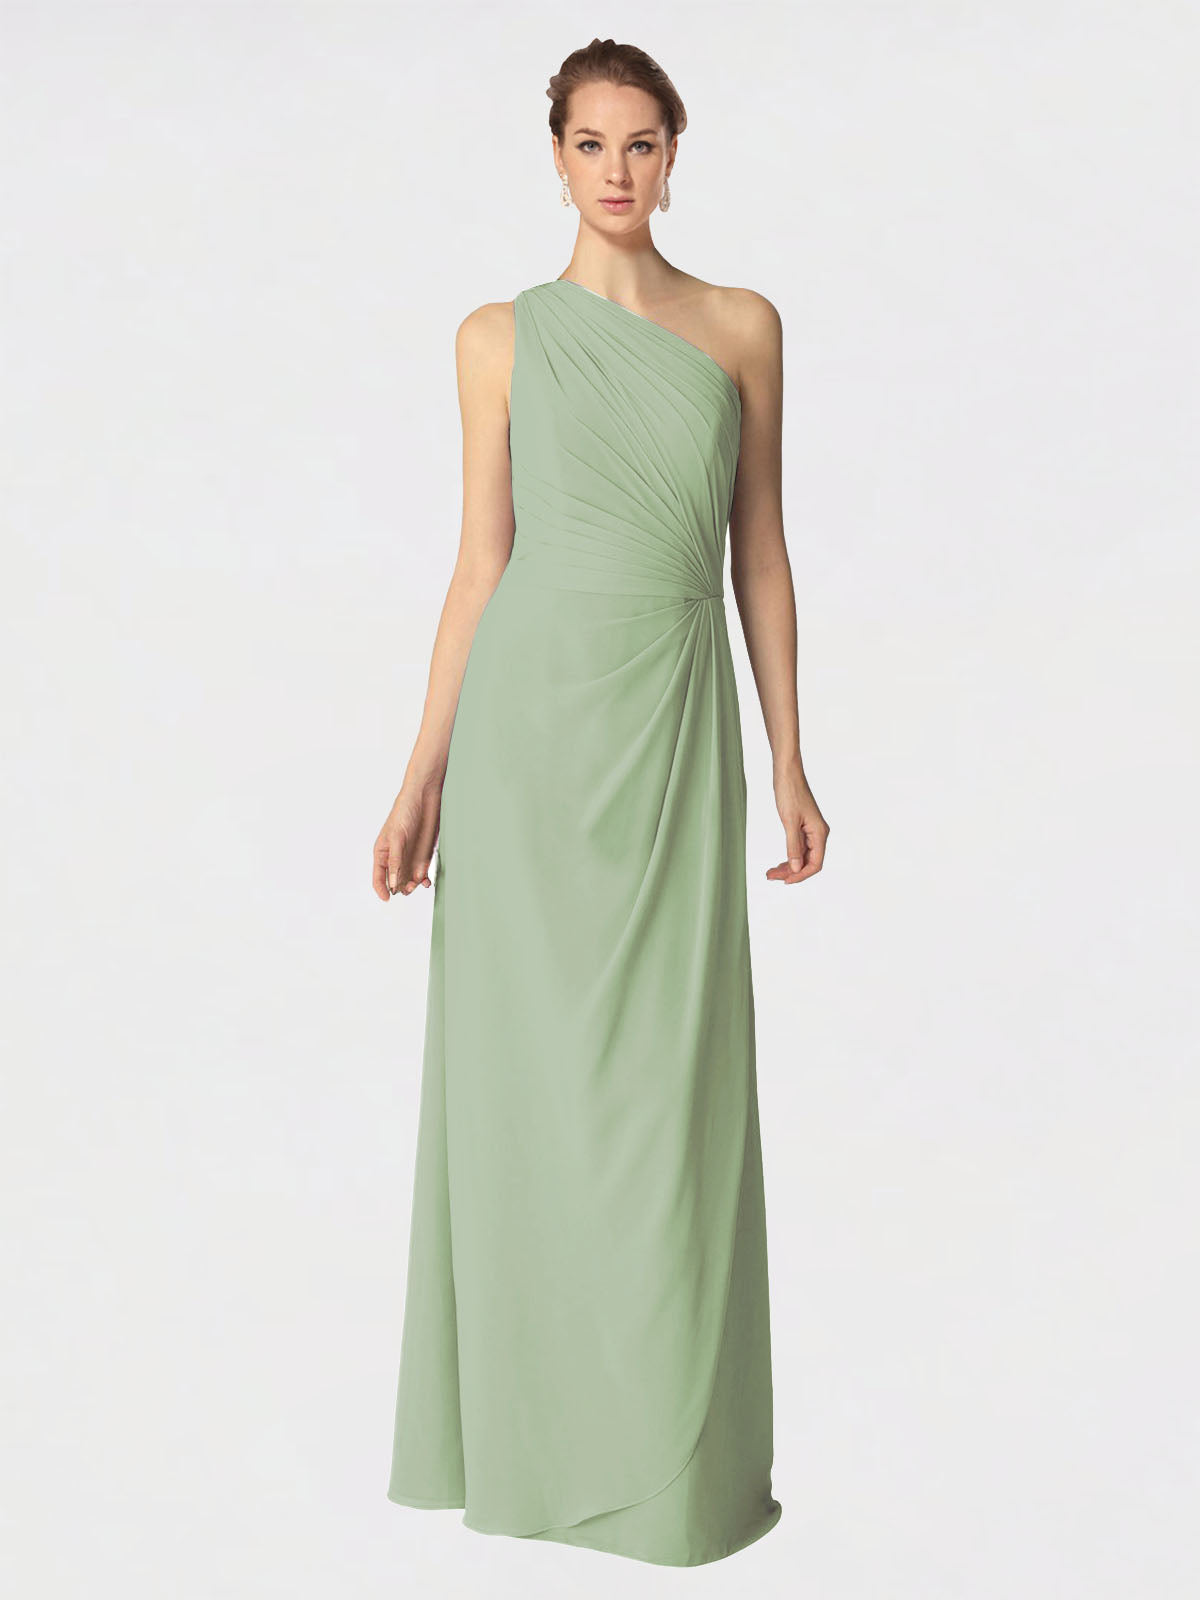 Long A-Line One Shoulder Sleeveless Smoke Green Chiffon Bridesmaid Dress Aurora